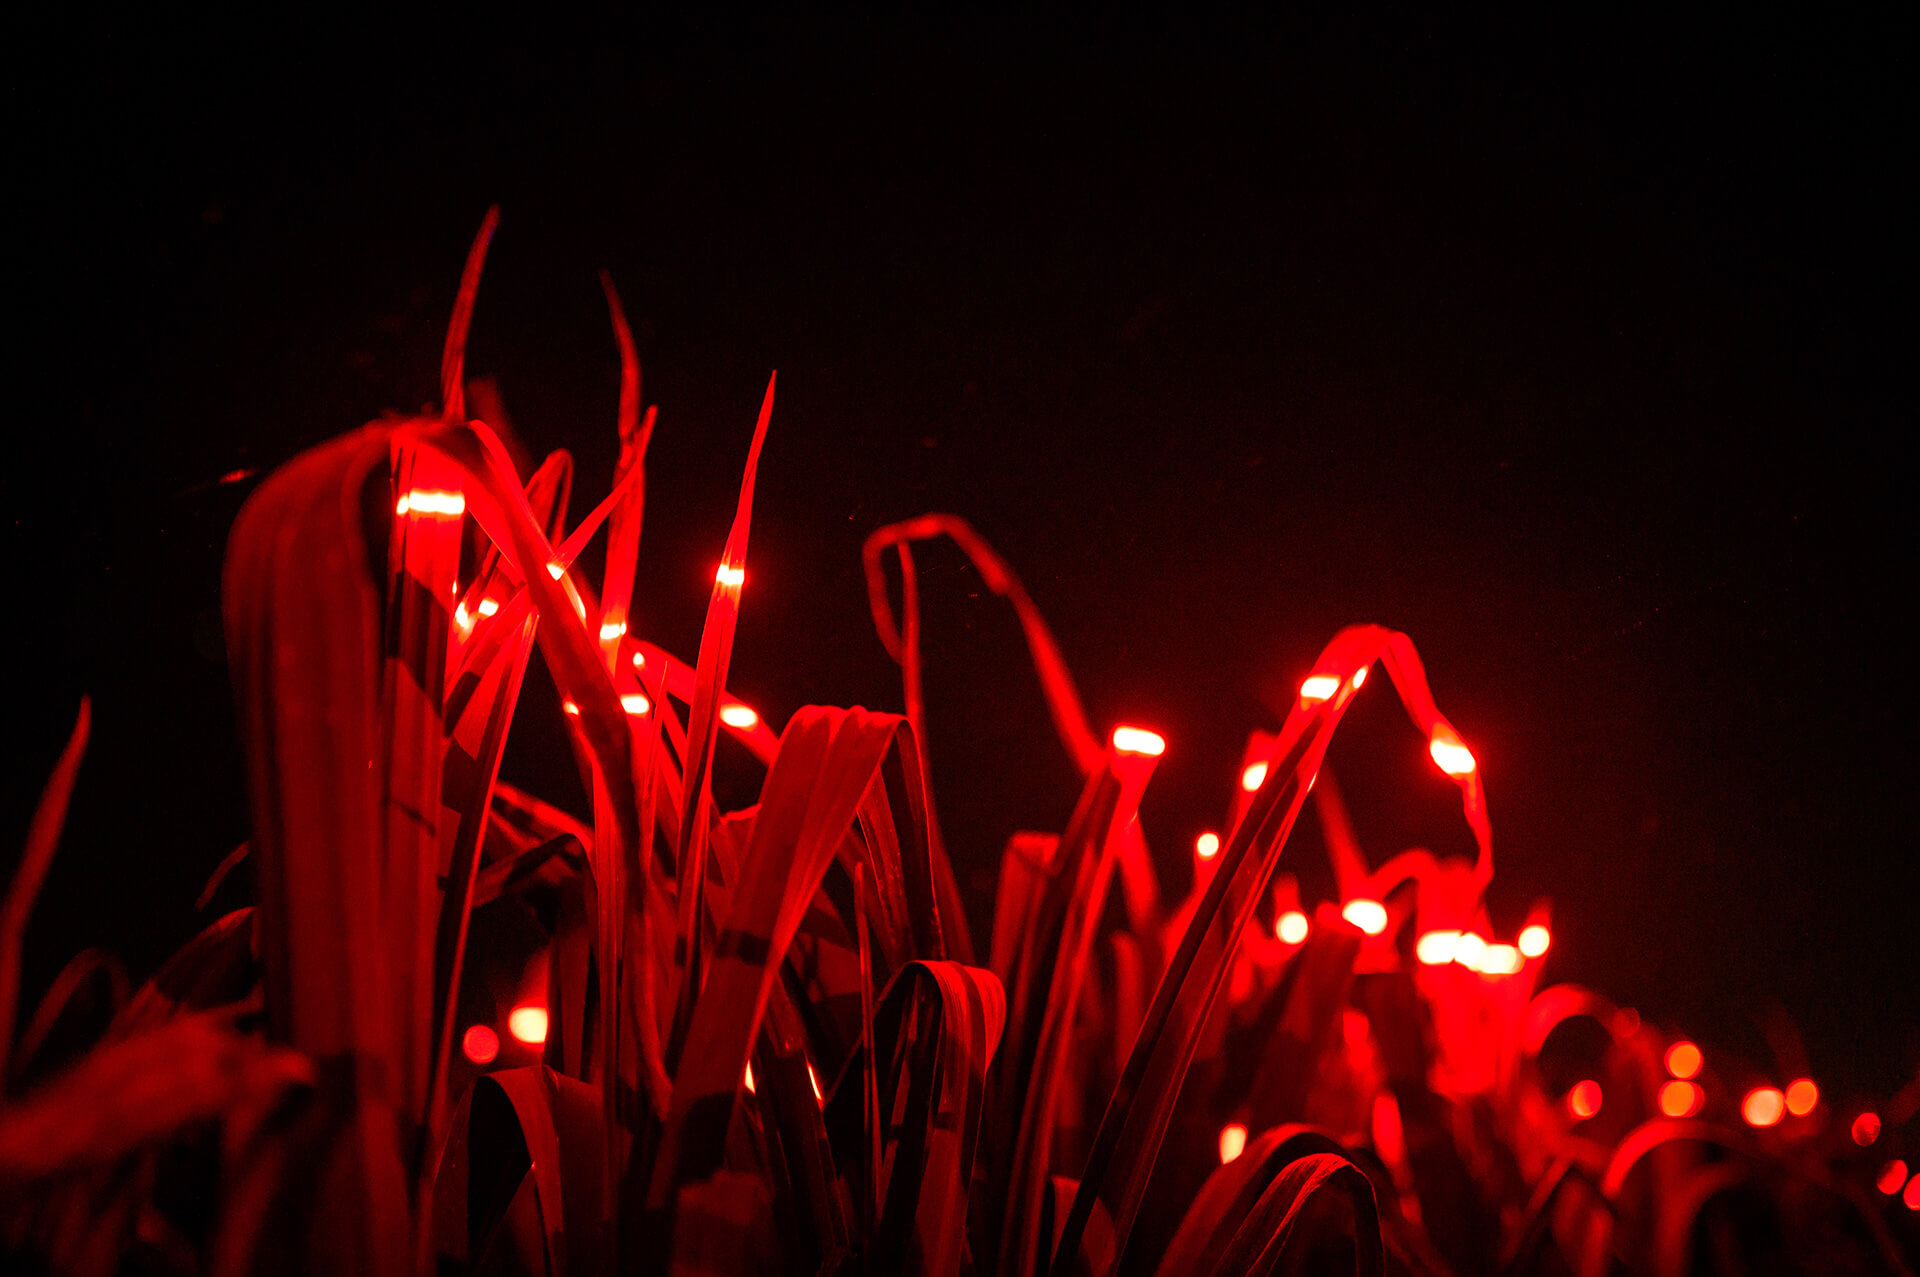 The field illuminated at night | Grow by Daan Roosegaarde | STIRworld